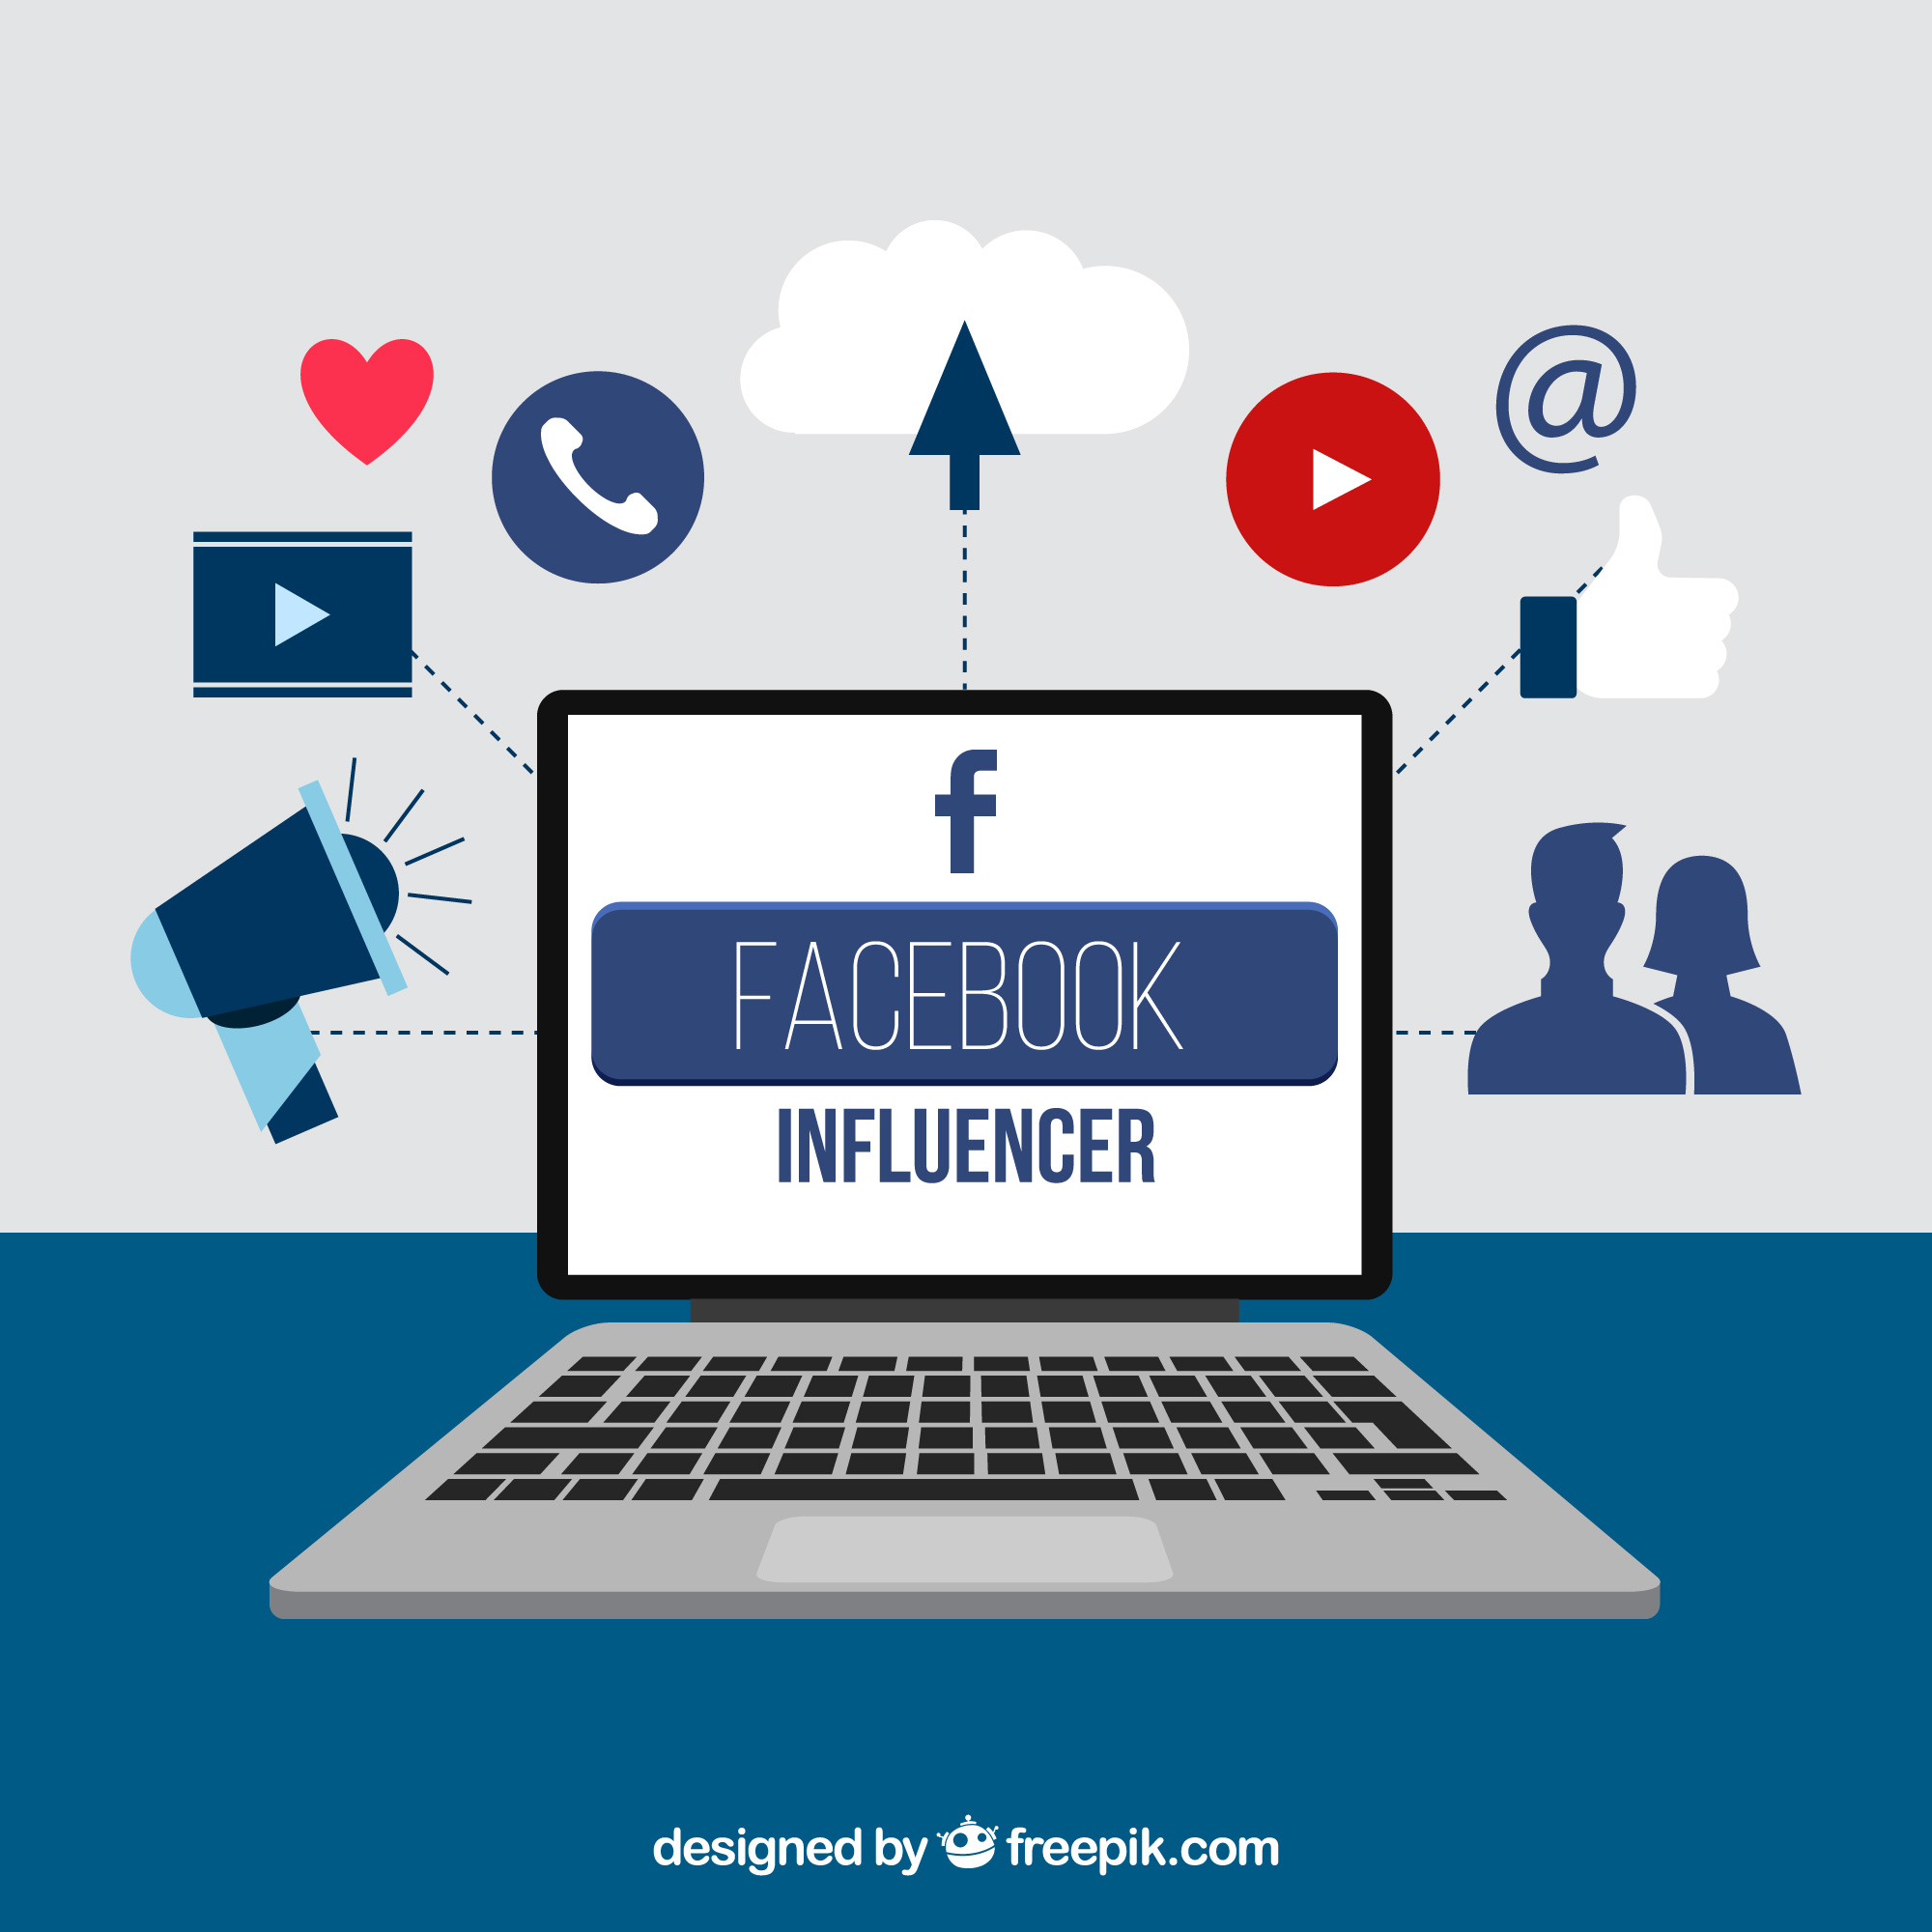 How to efficiently use Facebook as an Influencer/Content creator